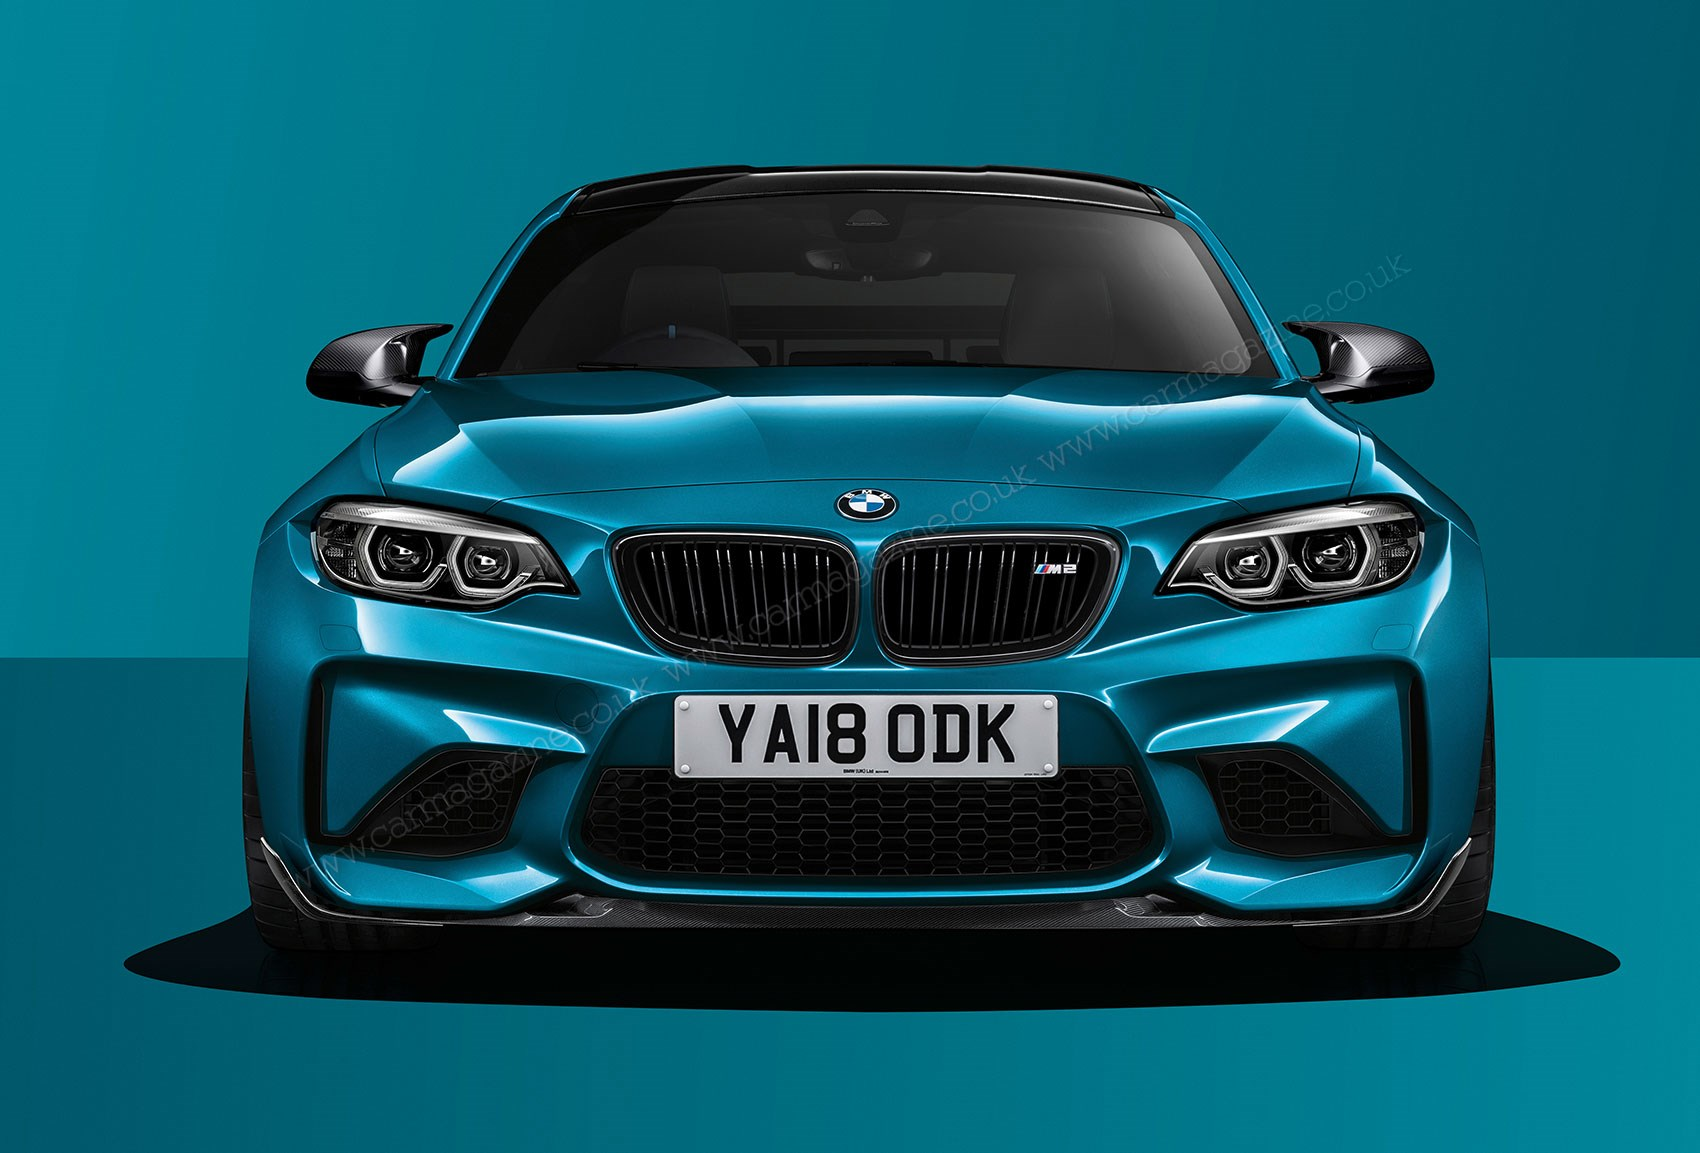 The New 2018 Bmw M2 Cs Car Magazine S Artist Impression